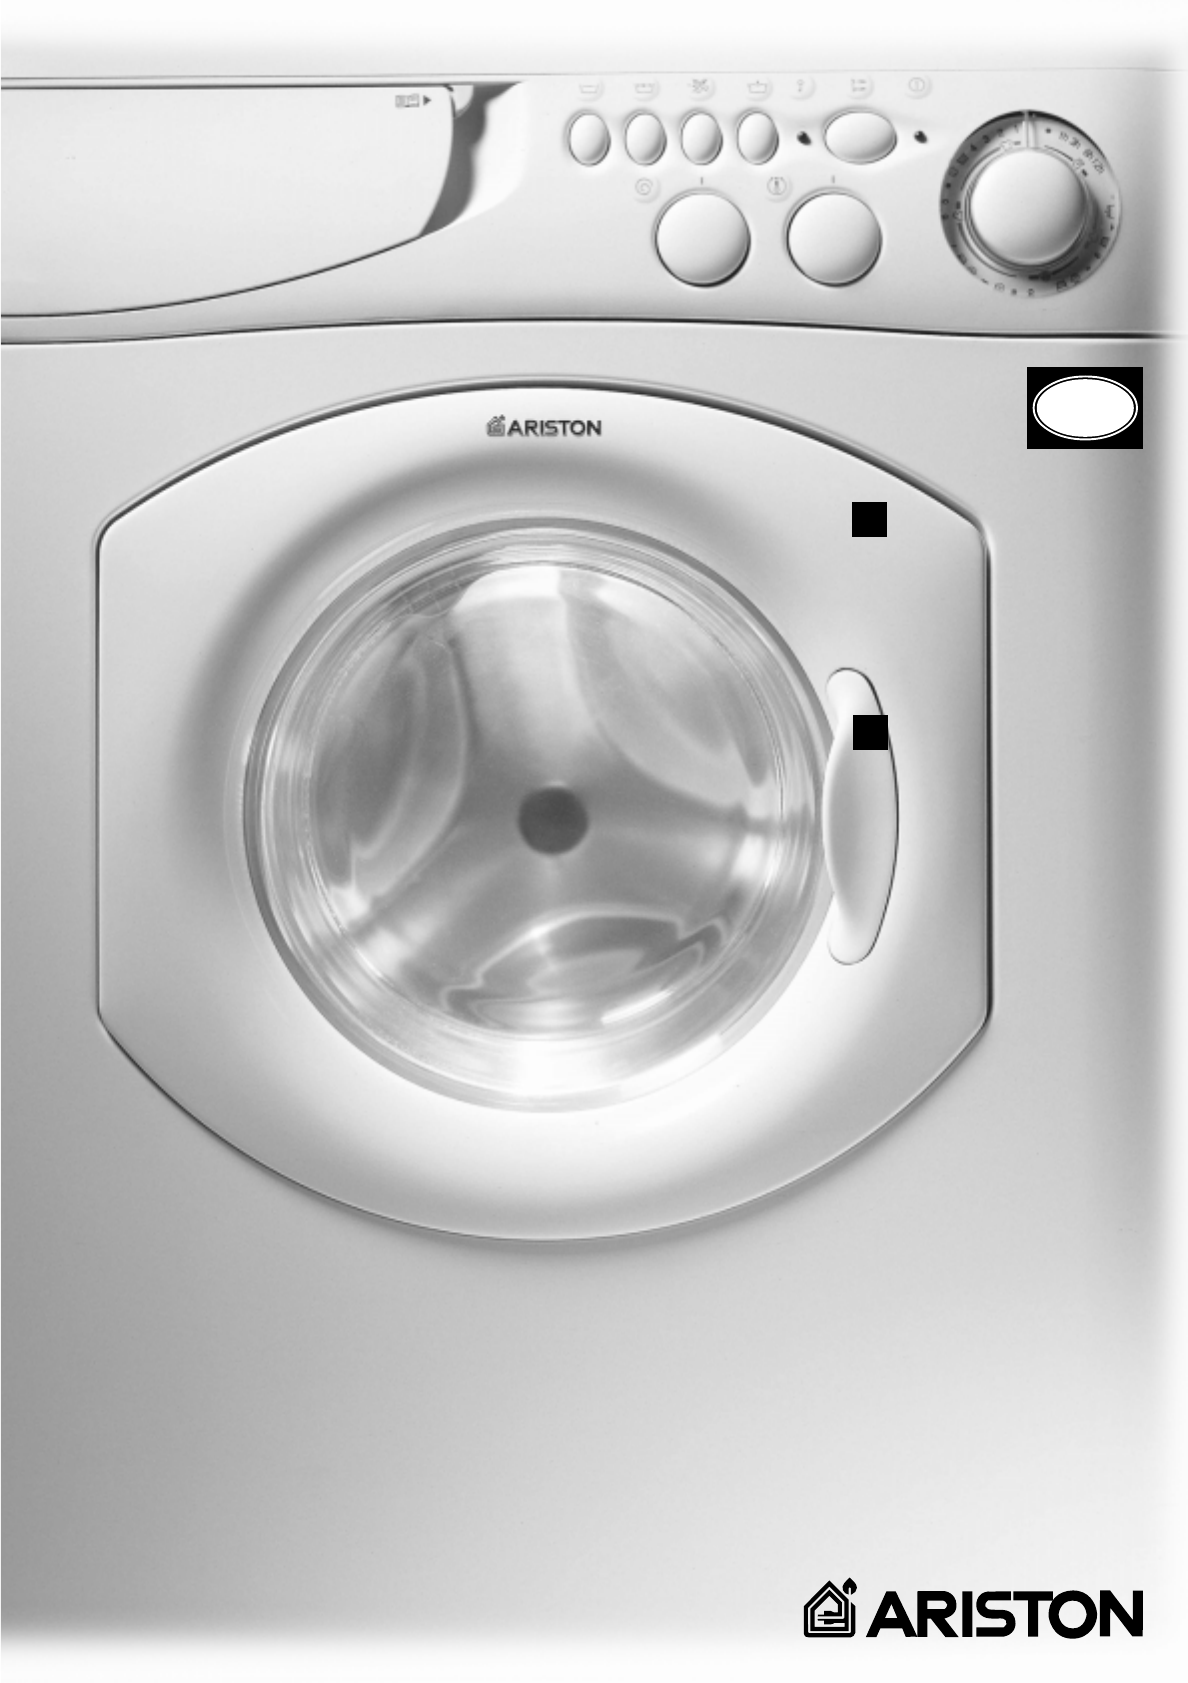 ariston washer a 1124 user guide